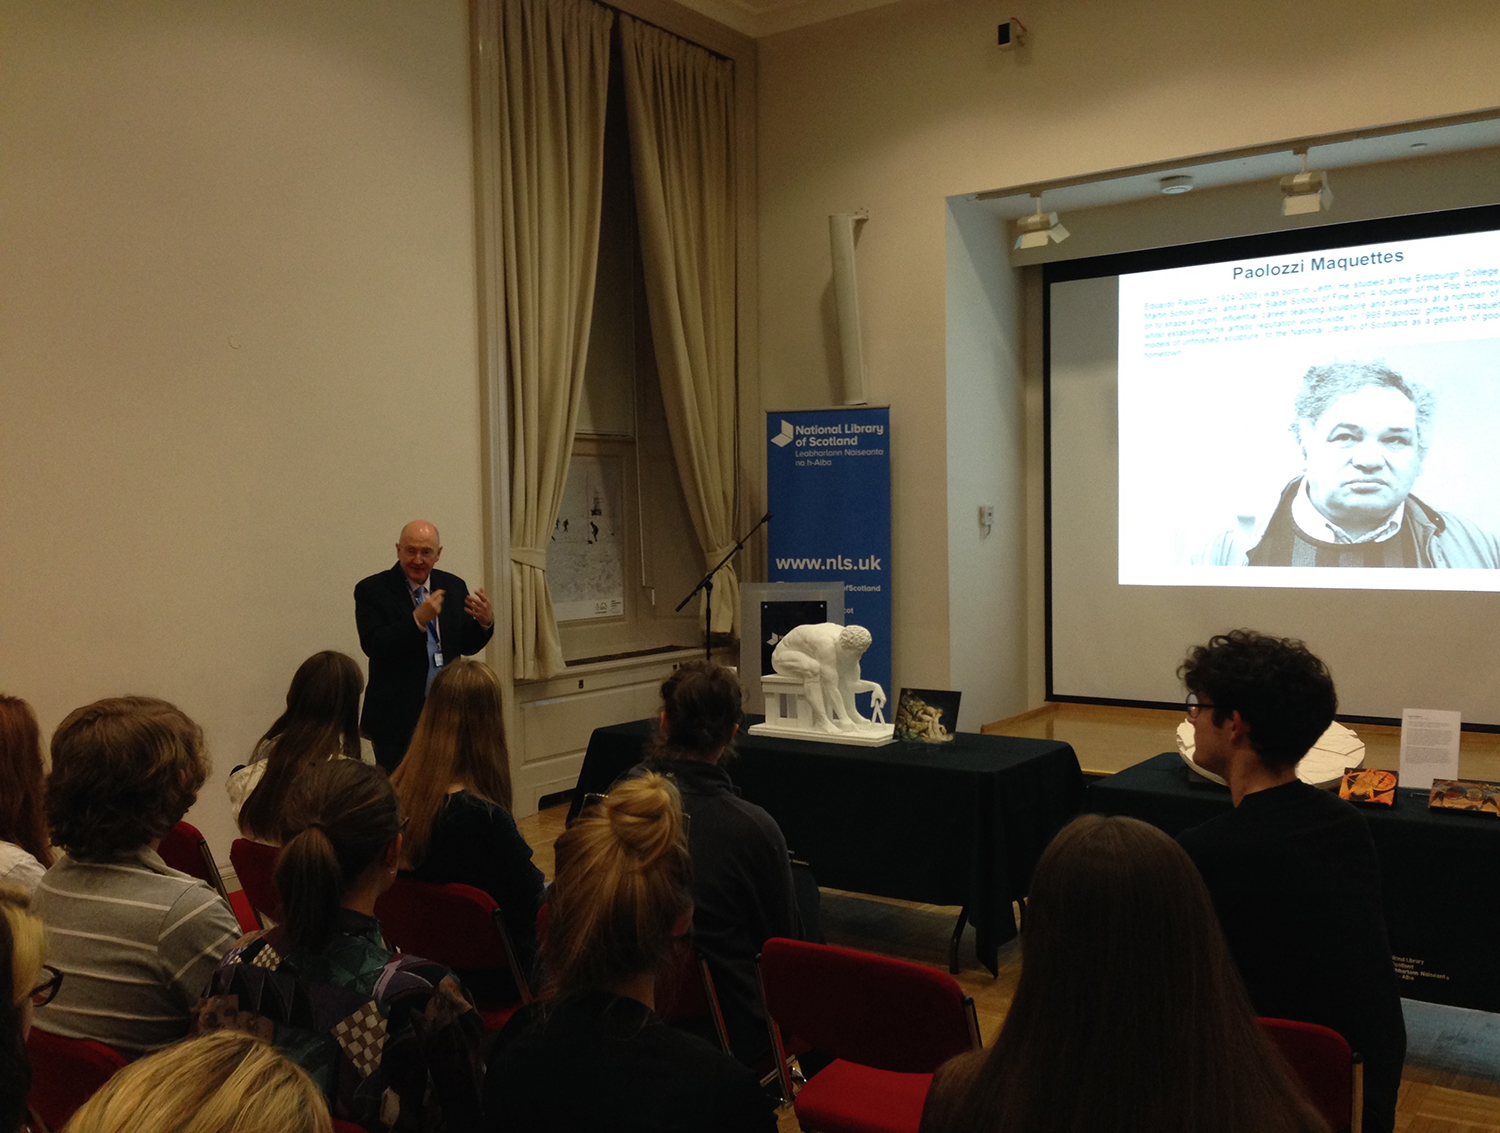 James Mitchell talk at the Scottish National Library